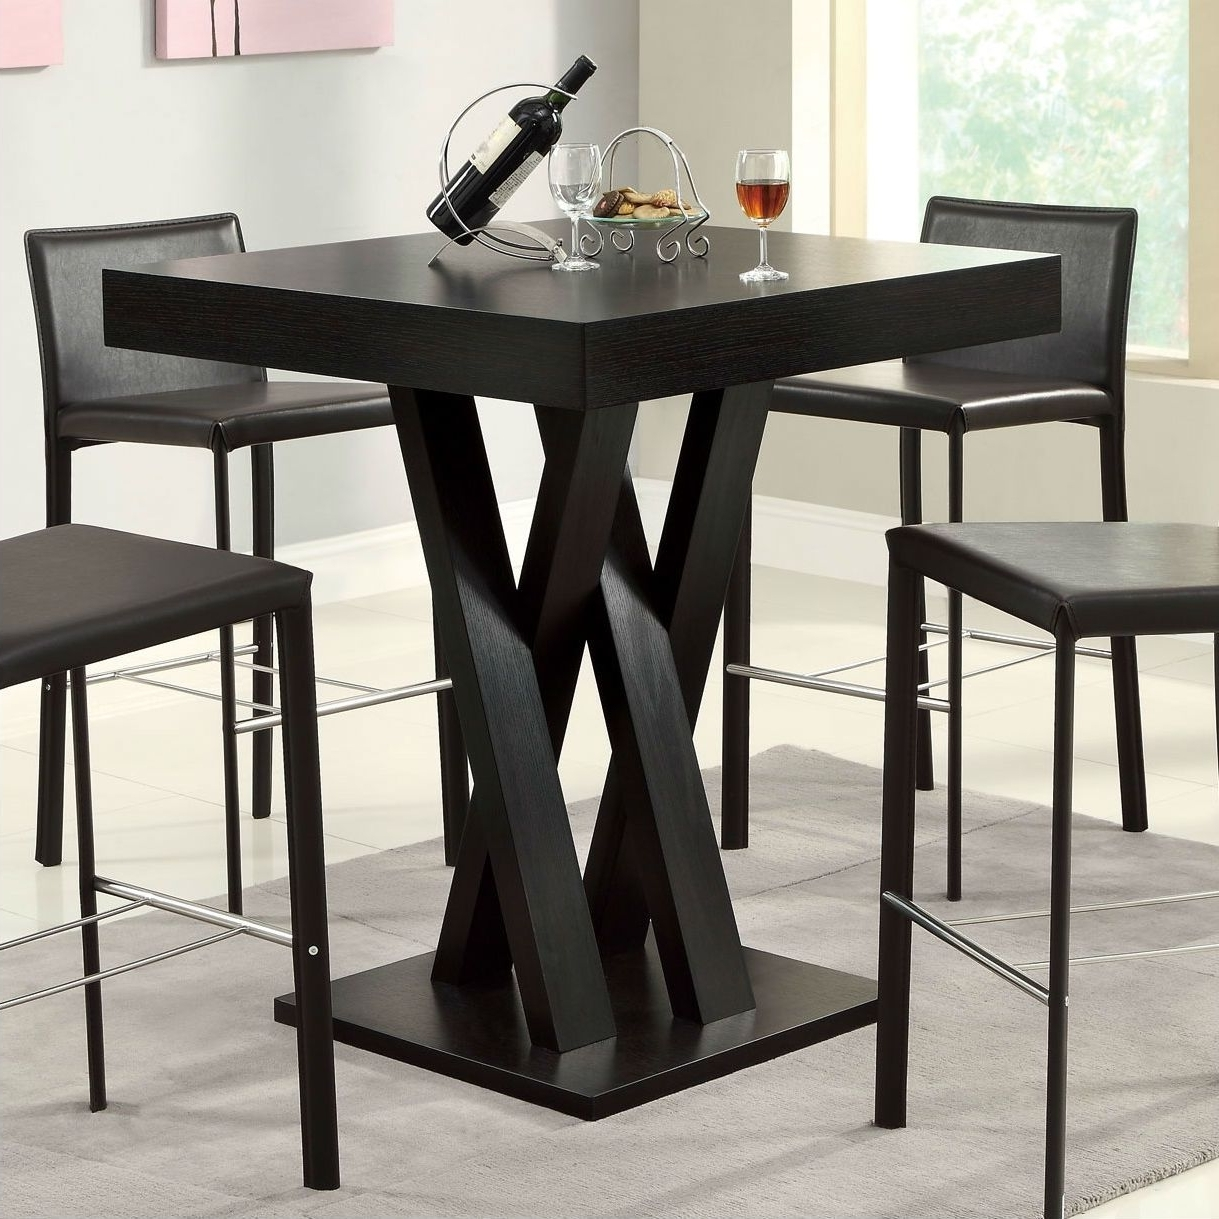 2017 Modern 40 Inch High Square Dining Table In Dark Cappuccino Finish In Dark Wood Square Dining Tables (View 23 of 25)